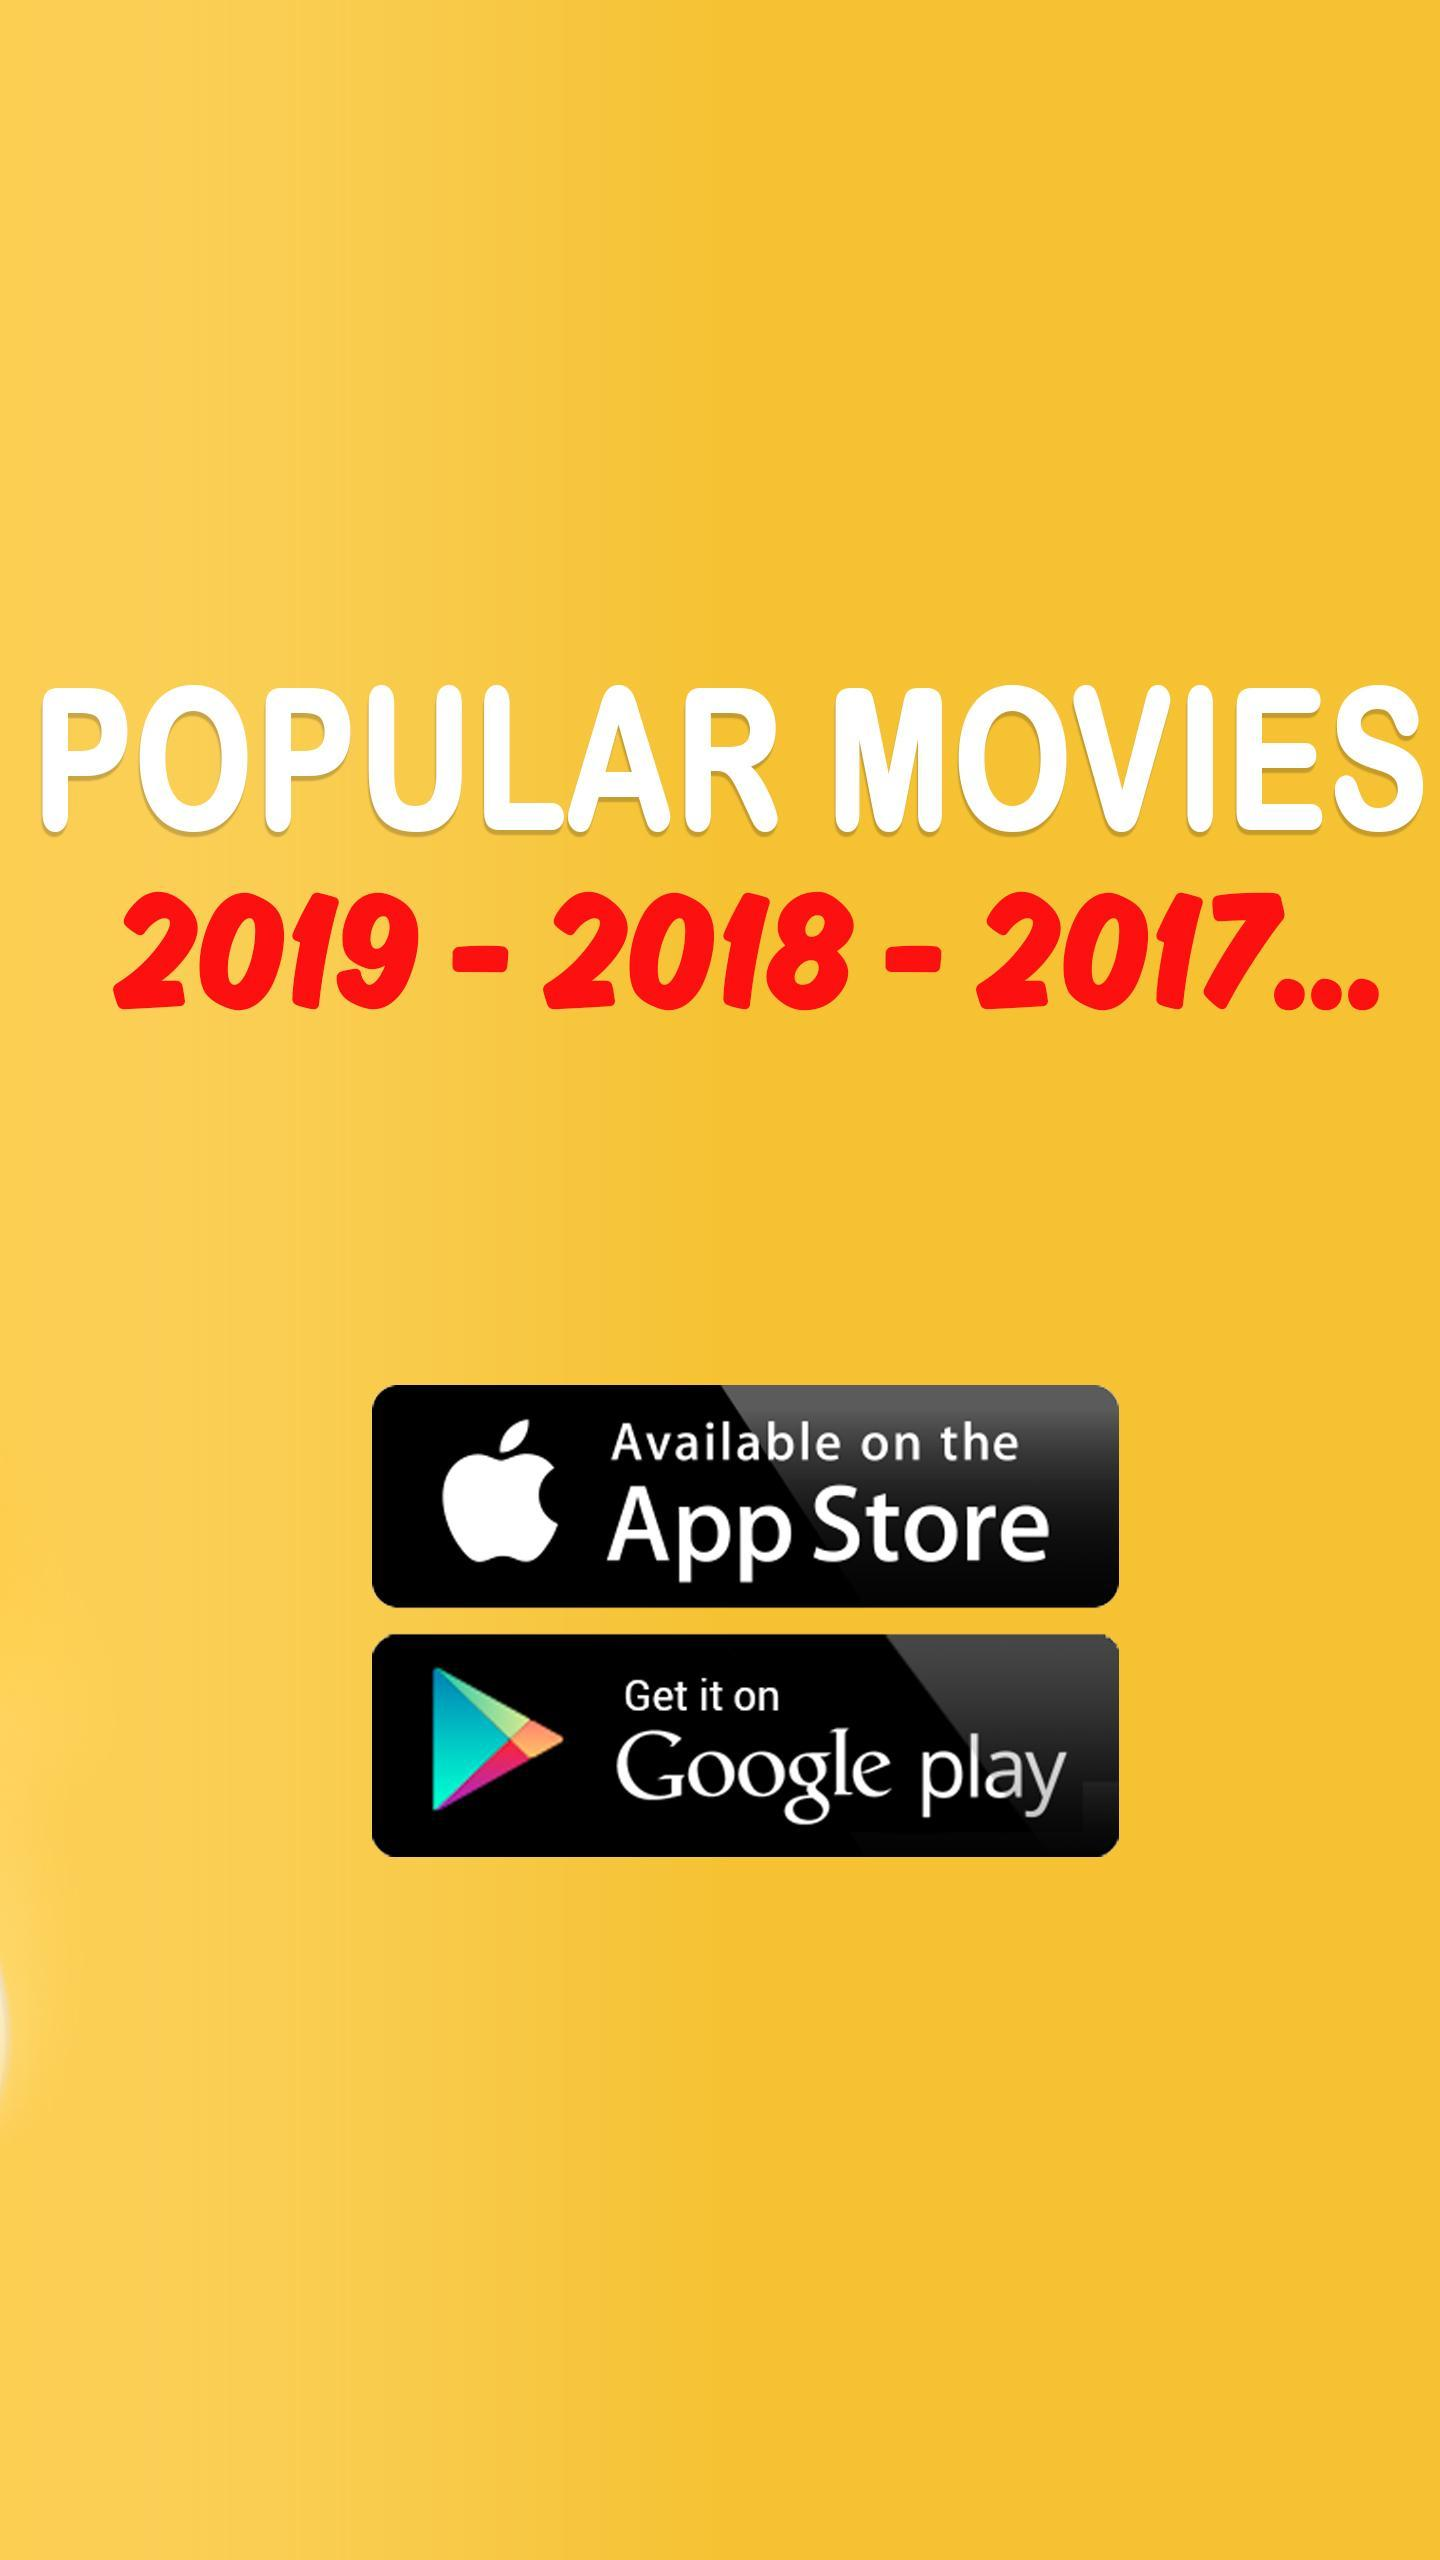 Lk21 - nonton film 2019 for Android - APK Download